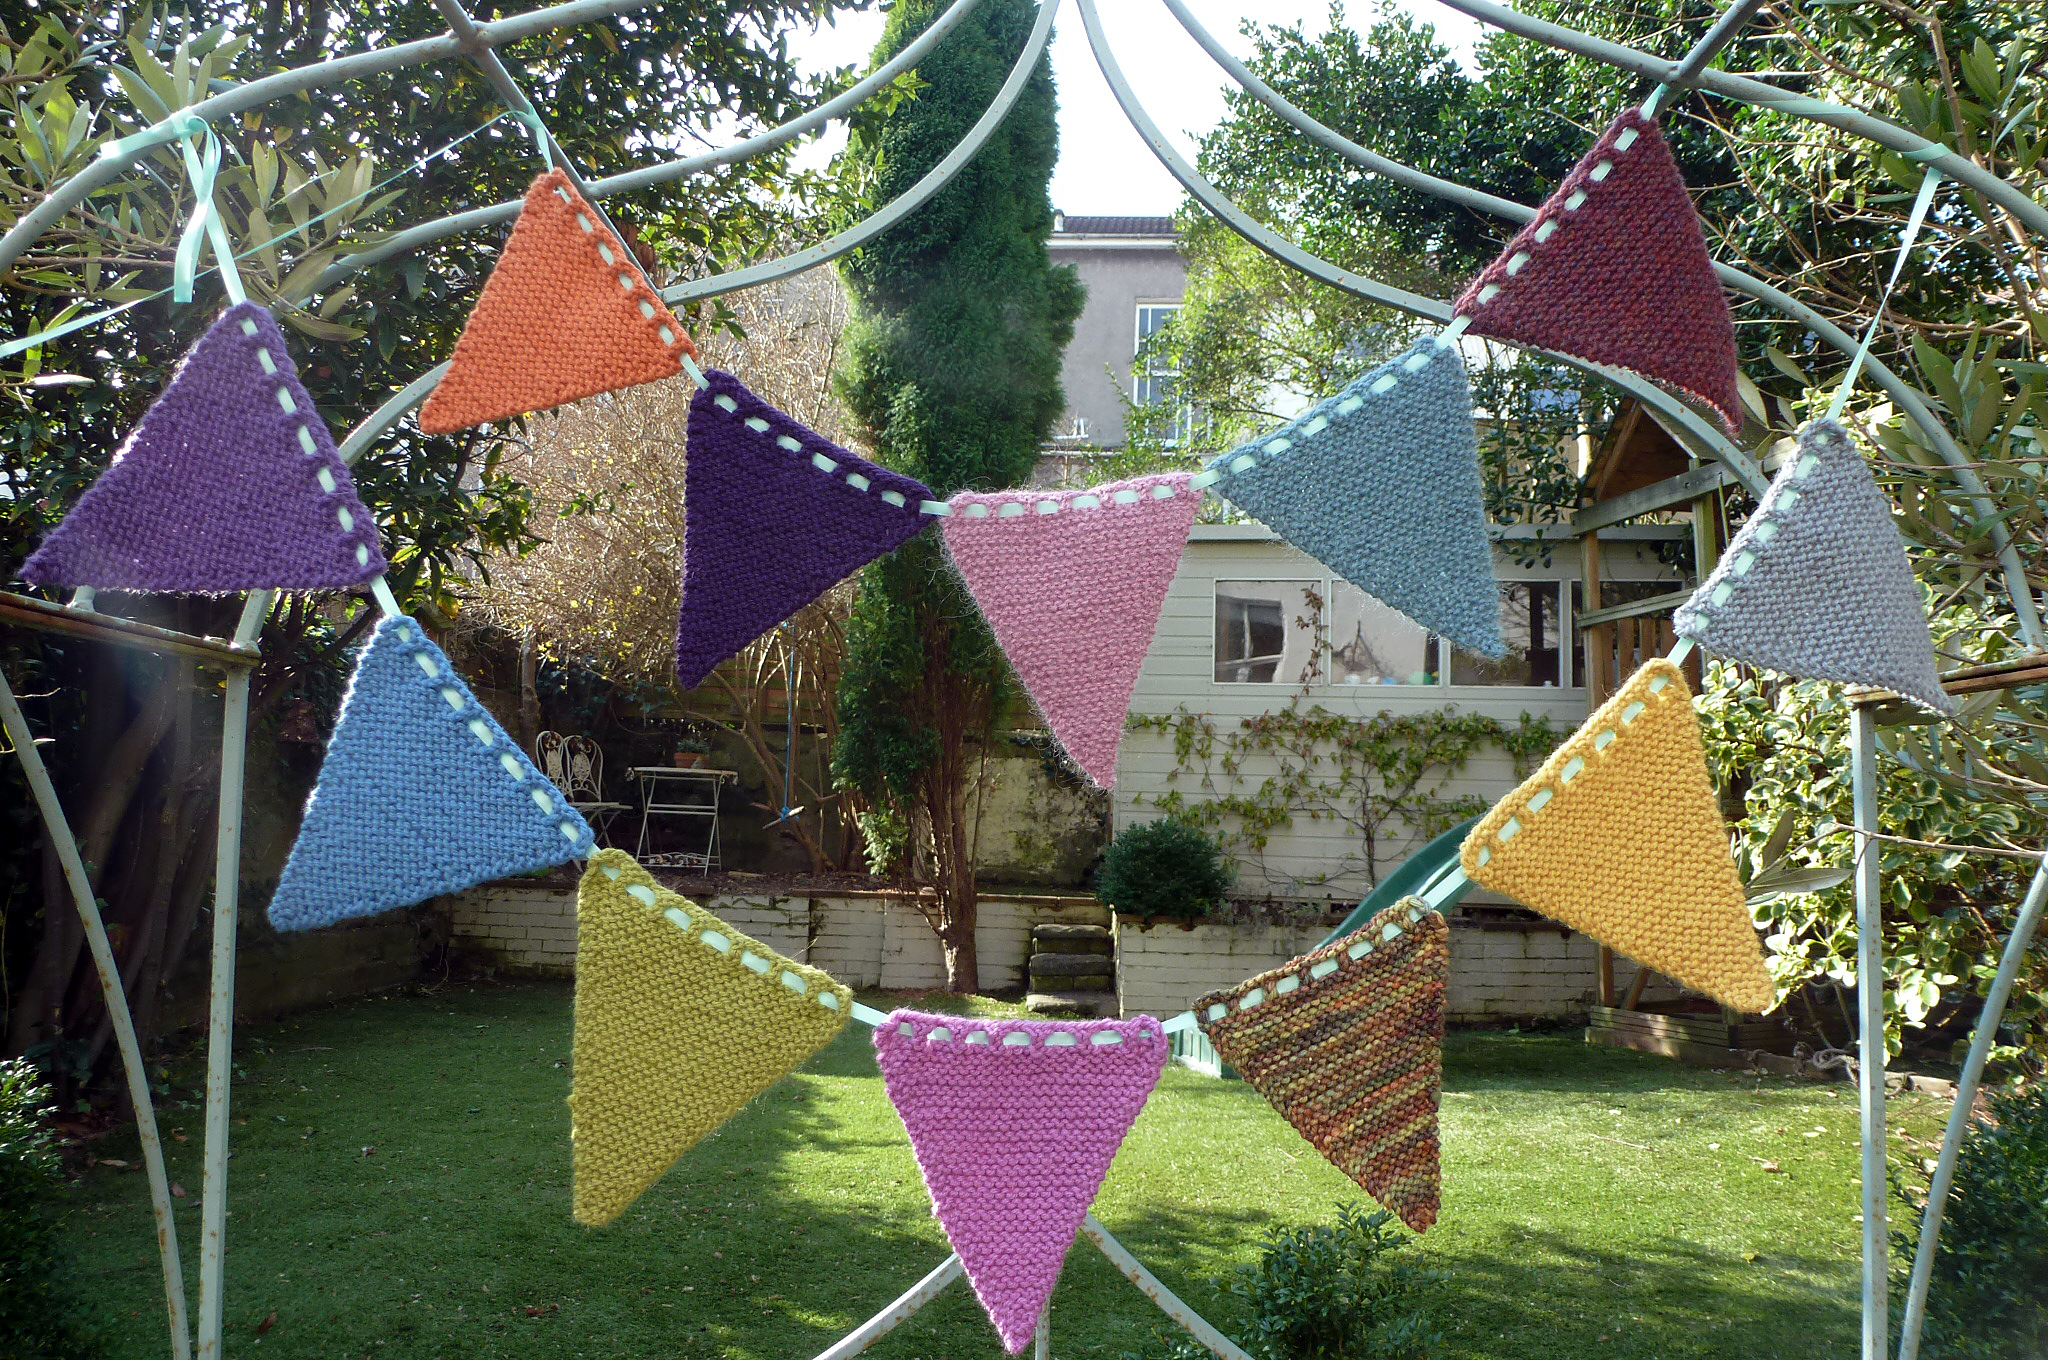 Bunting Knitting Pattern : Knitted Bunting Pattern on Hobbycraft - Buttons and Beeswax